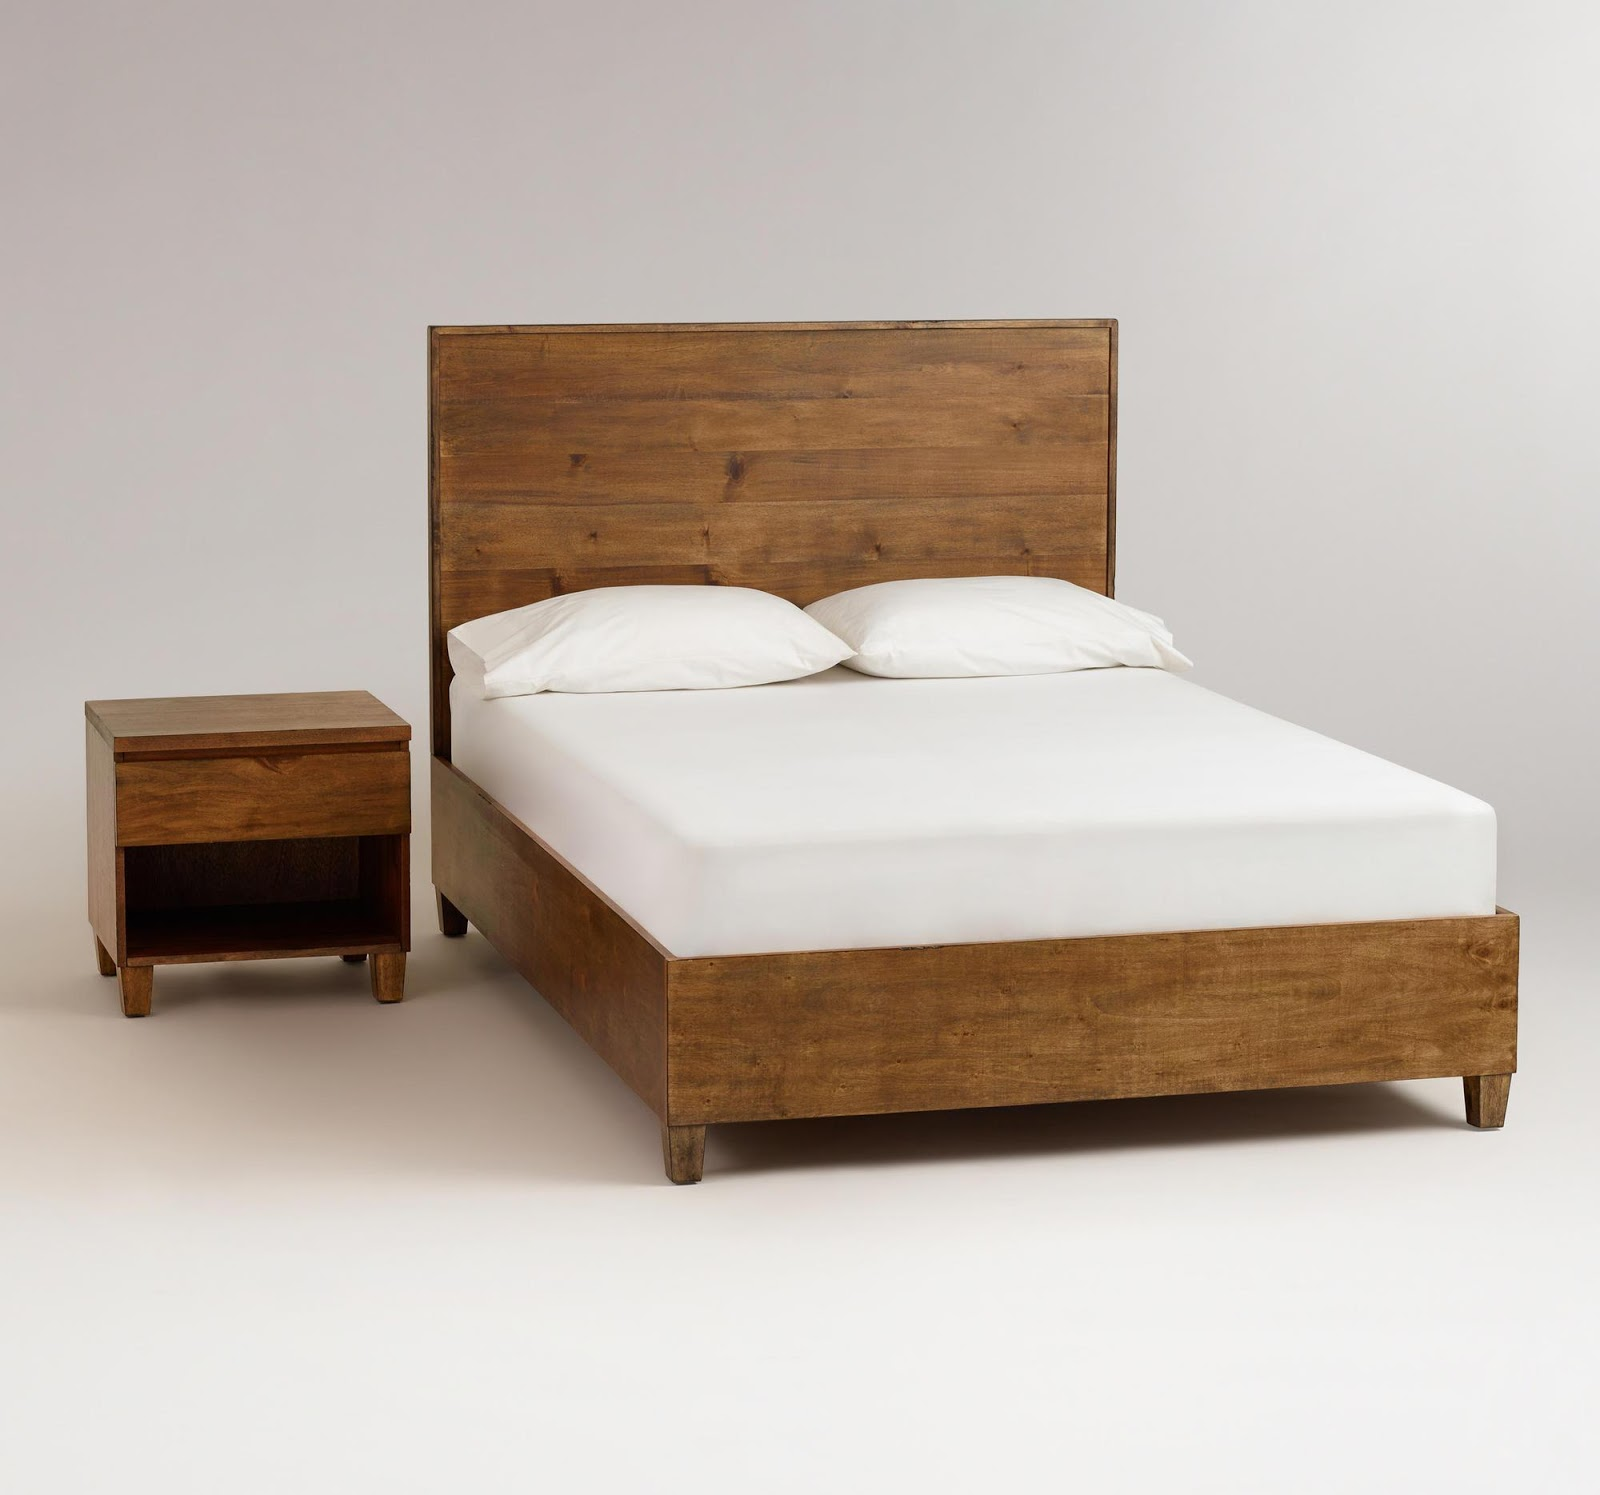 Home priority homey feeling of rustic bed frames ideas Simple wooden bed designs